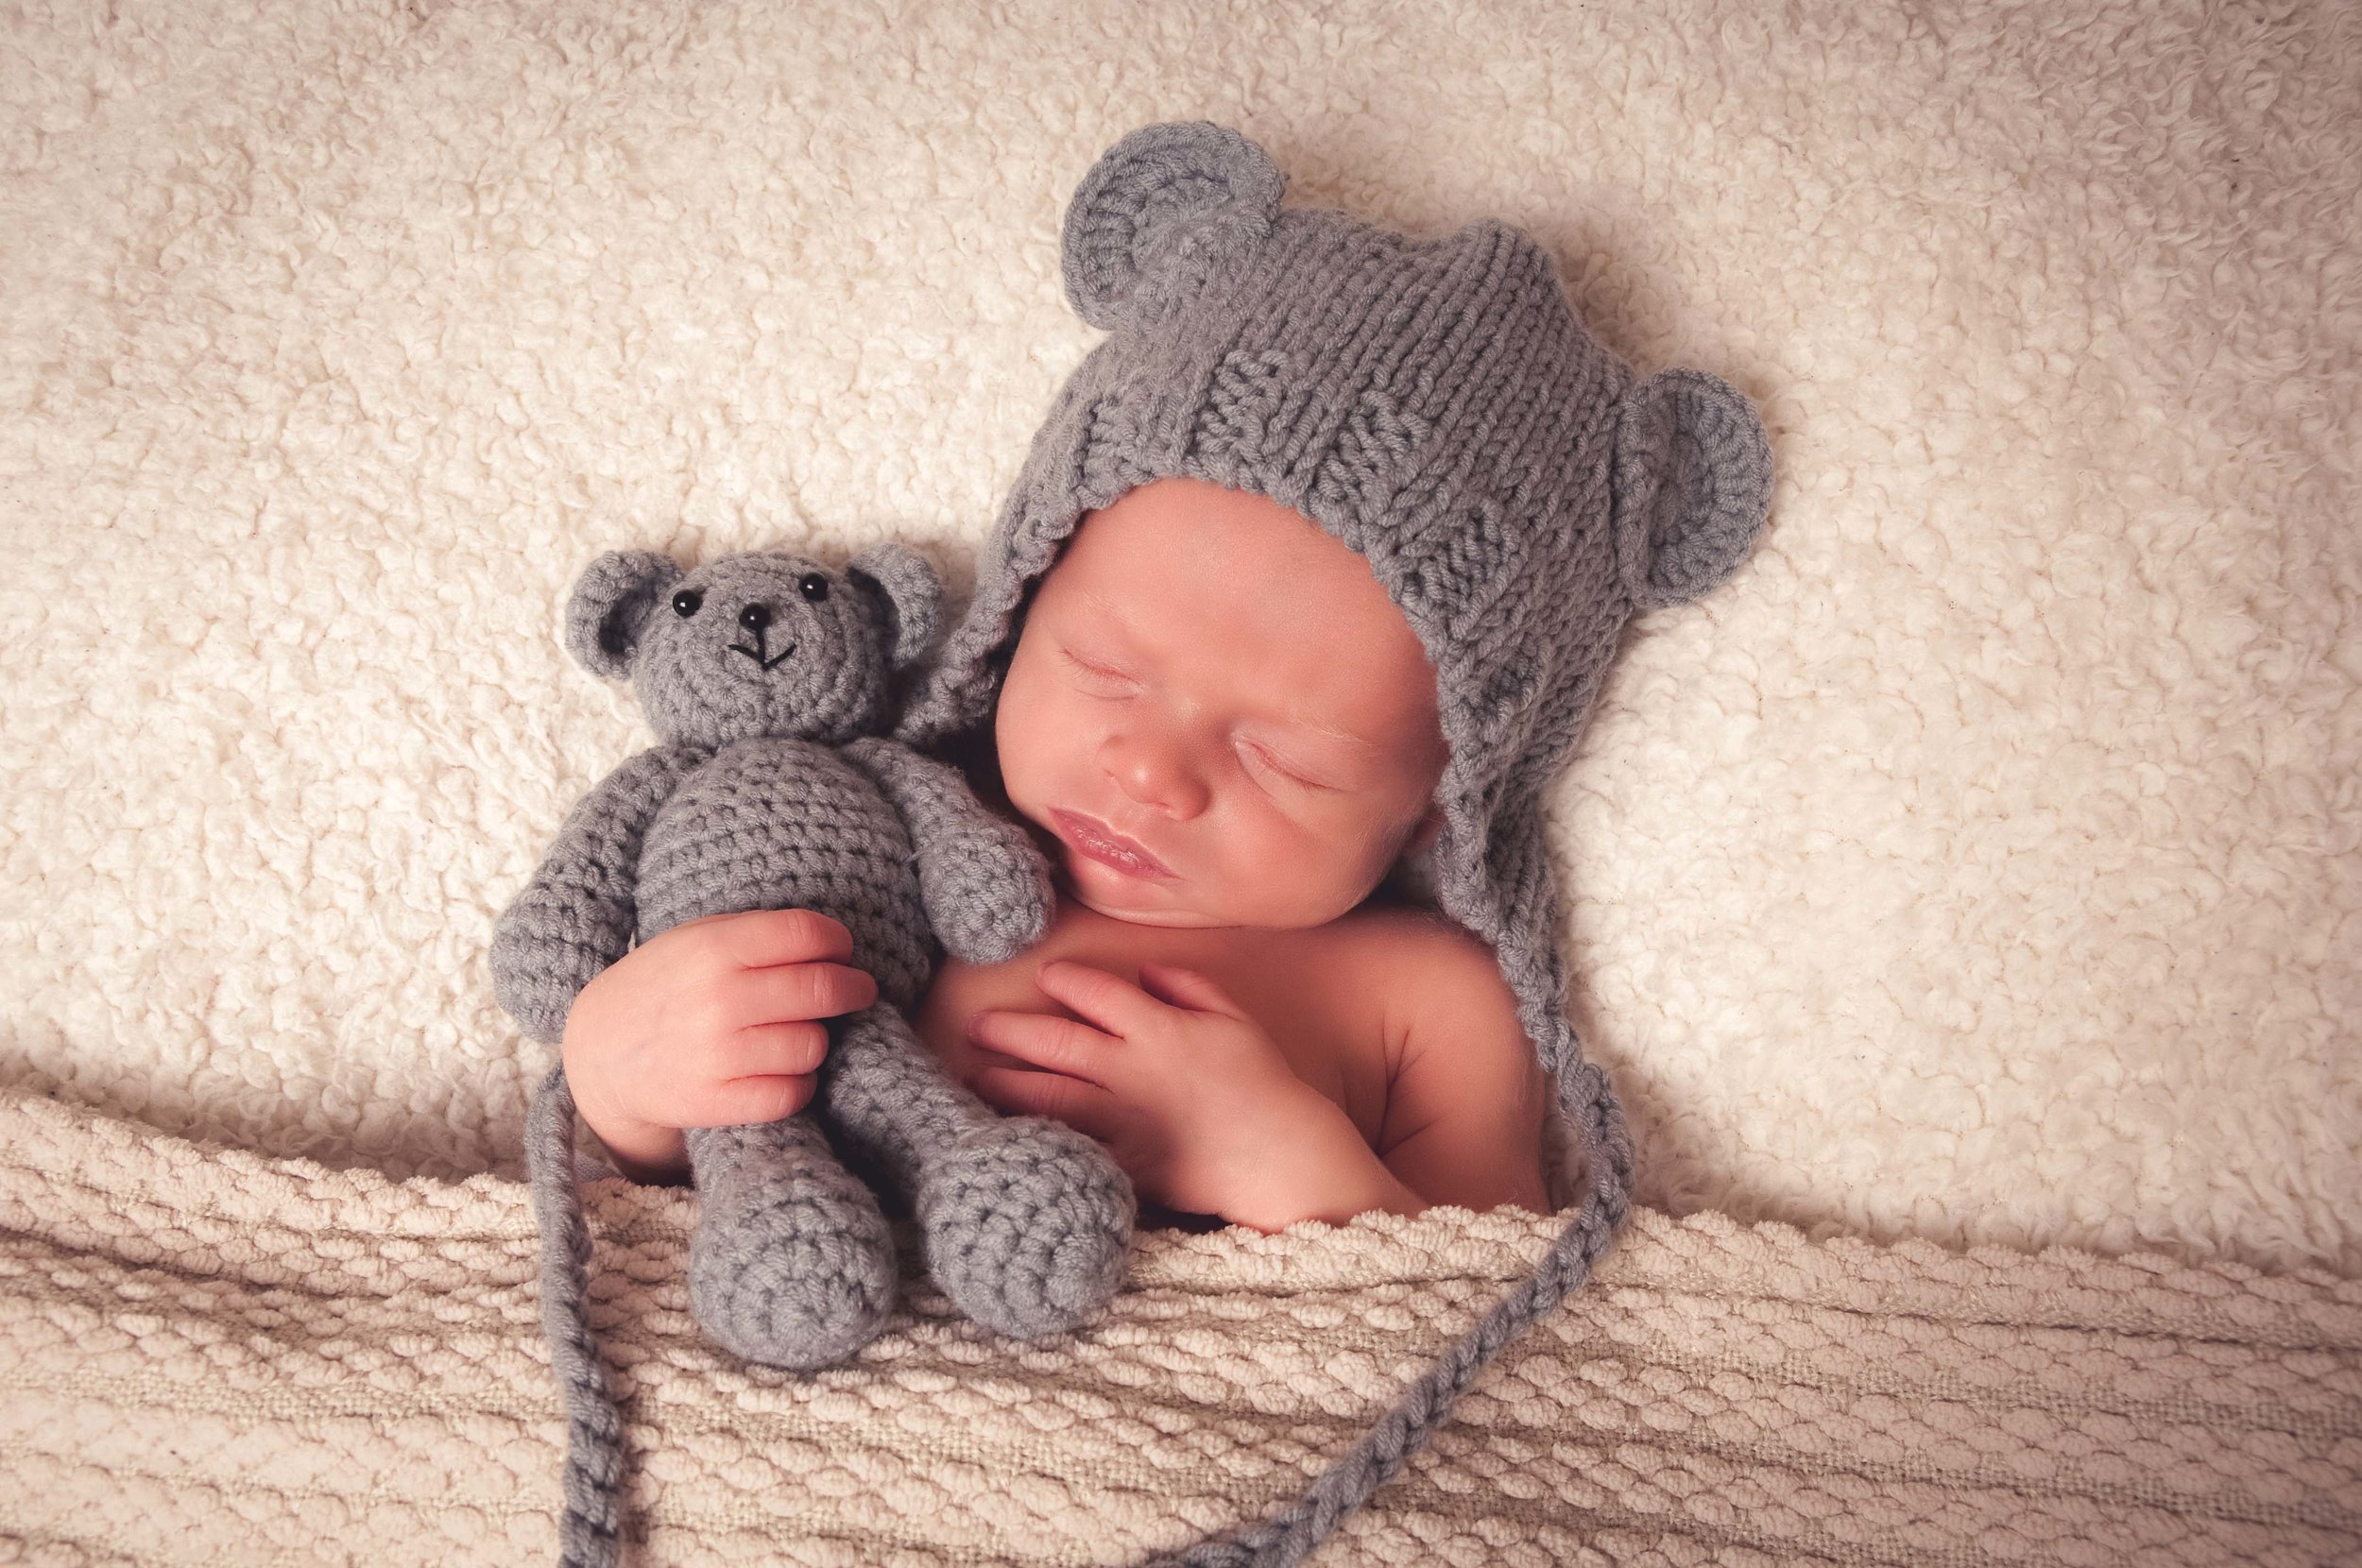 newborn-baby-photography 2.jpg